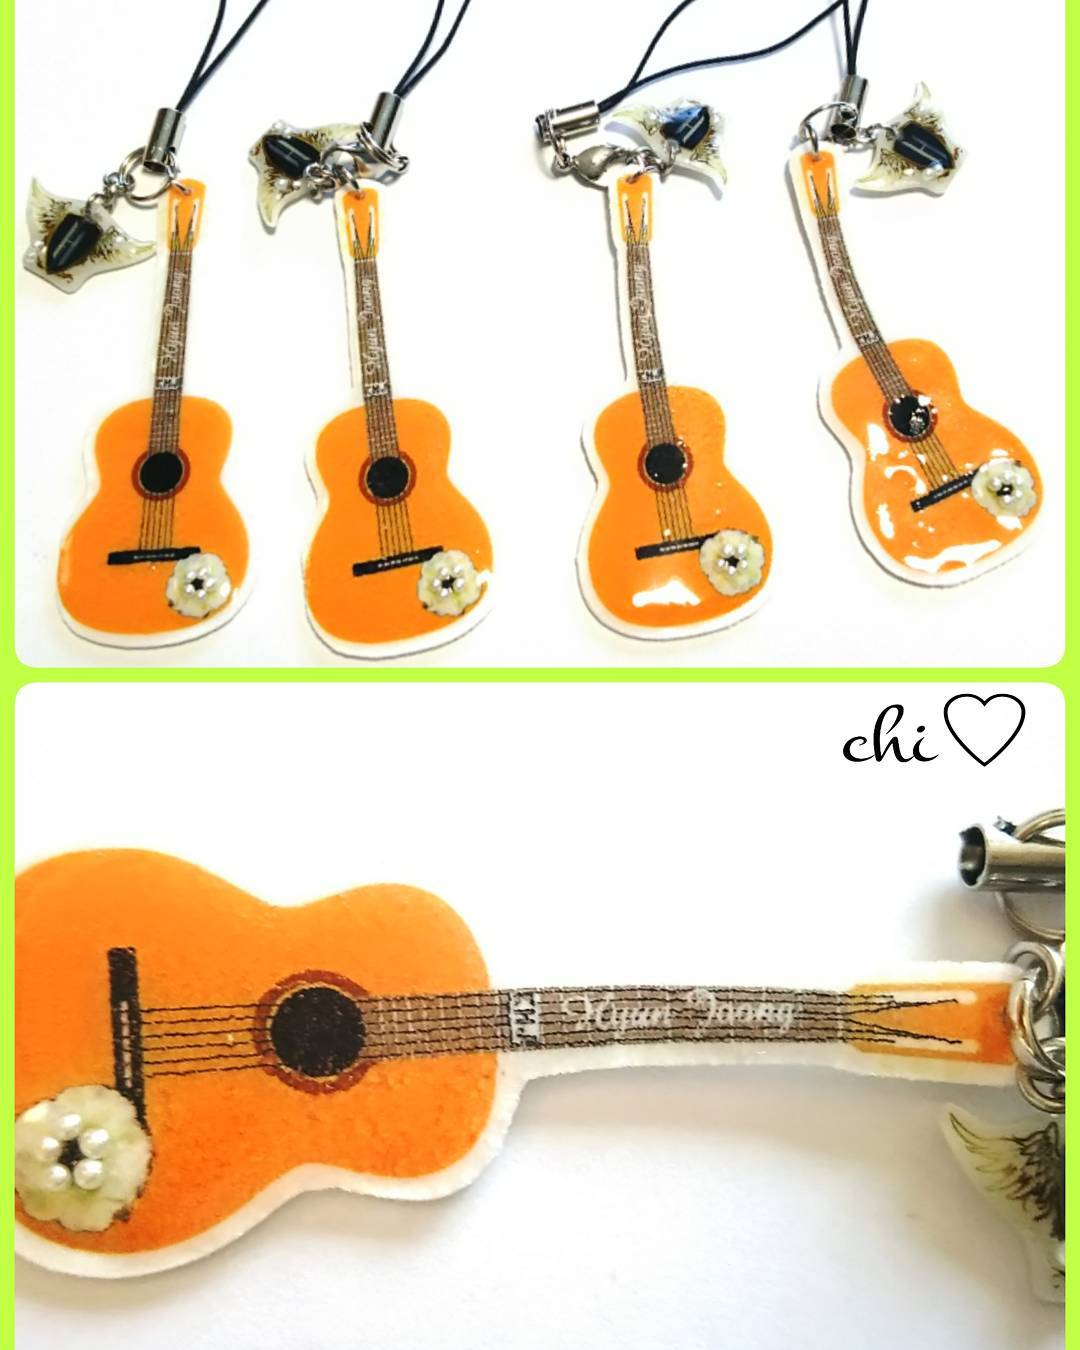 Fanmade - Guitar type strap I wanted to make it once HJ guitar